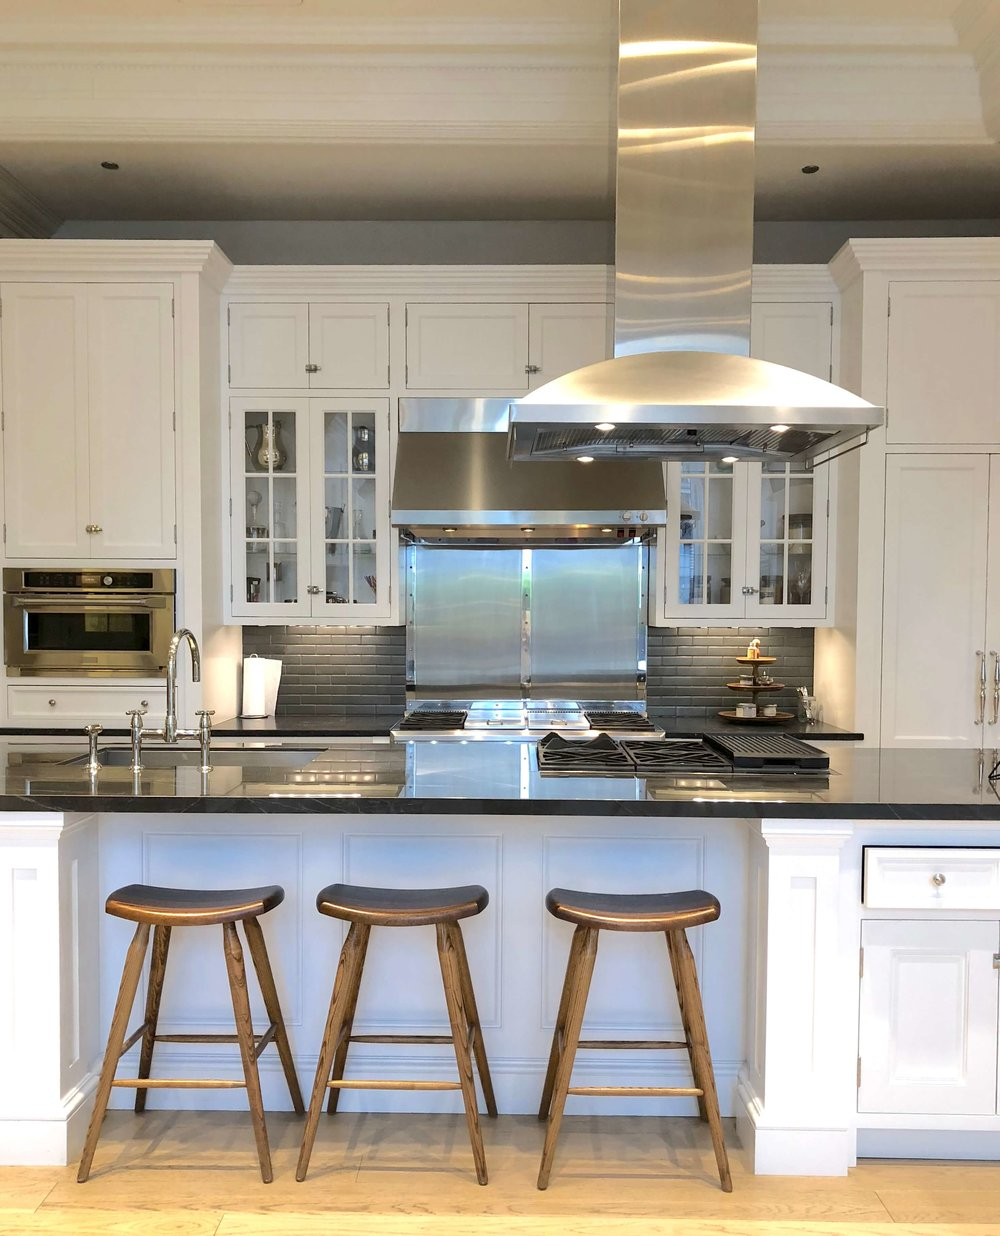 One of the beautiful kitchens in the Monogram Design Center in Chicago #monogramappliances #whitekitchen